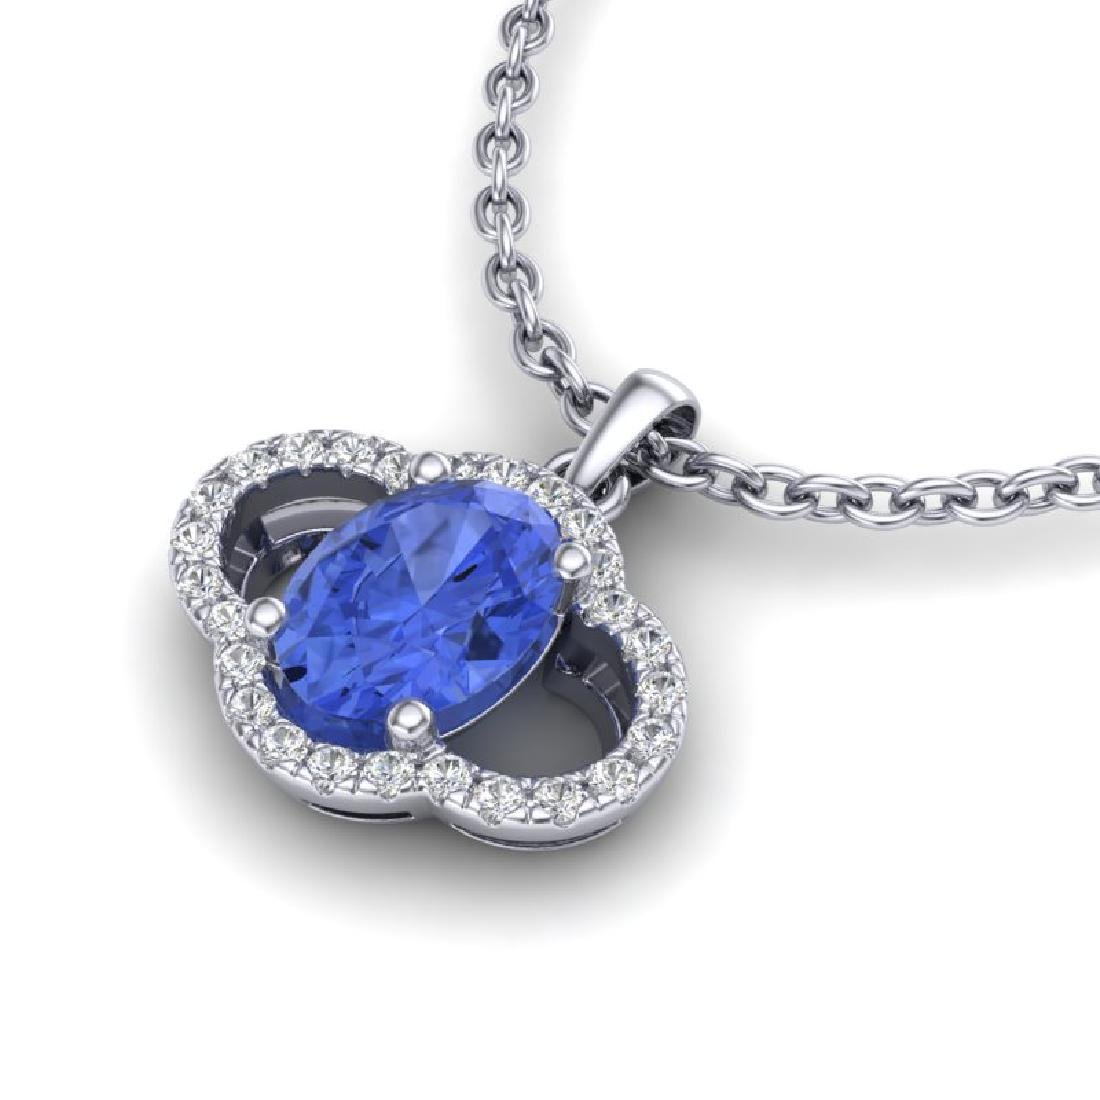 1.75 CTW Tanzanite & Micro Pave VS/SI Diamond Necklace - 2